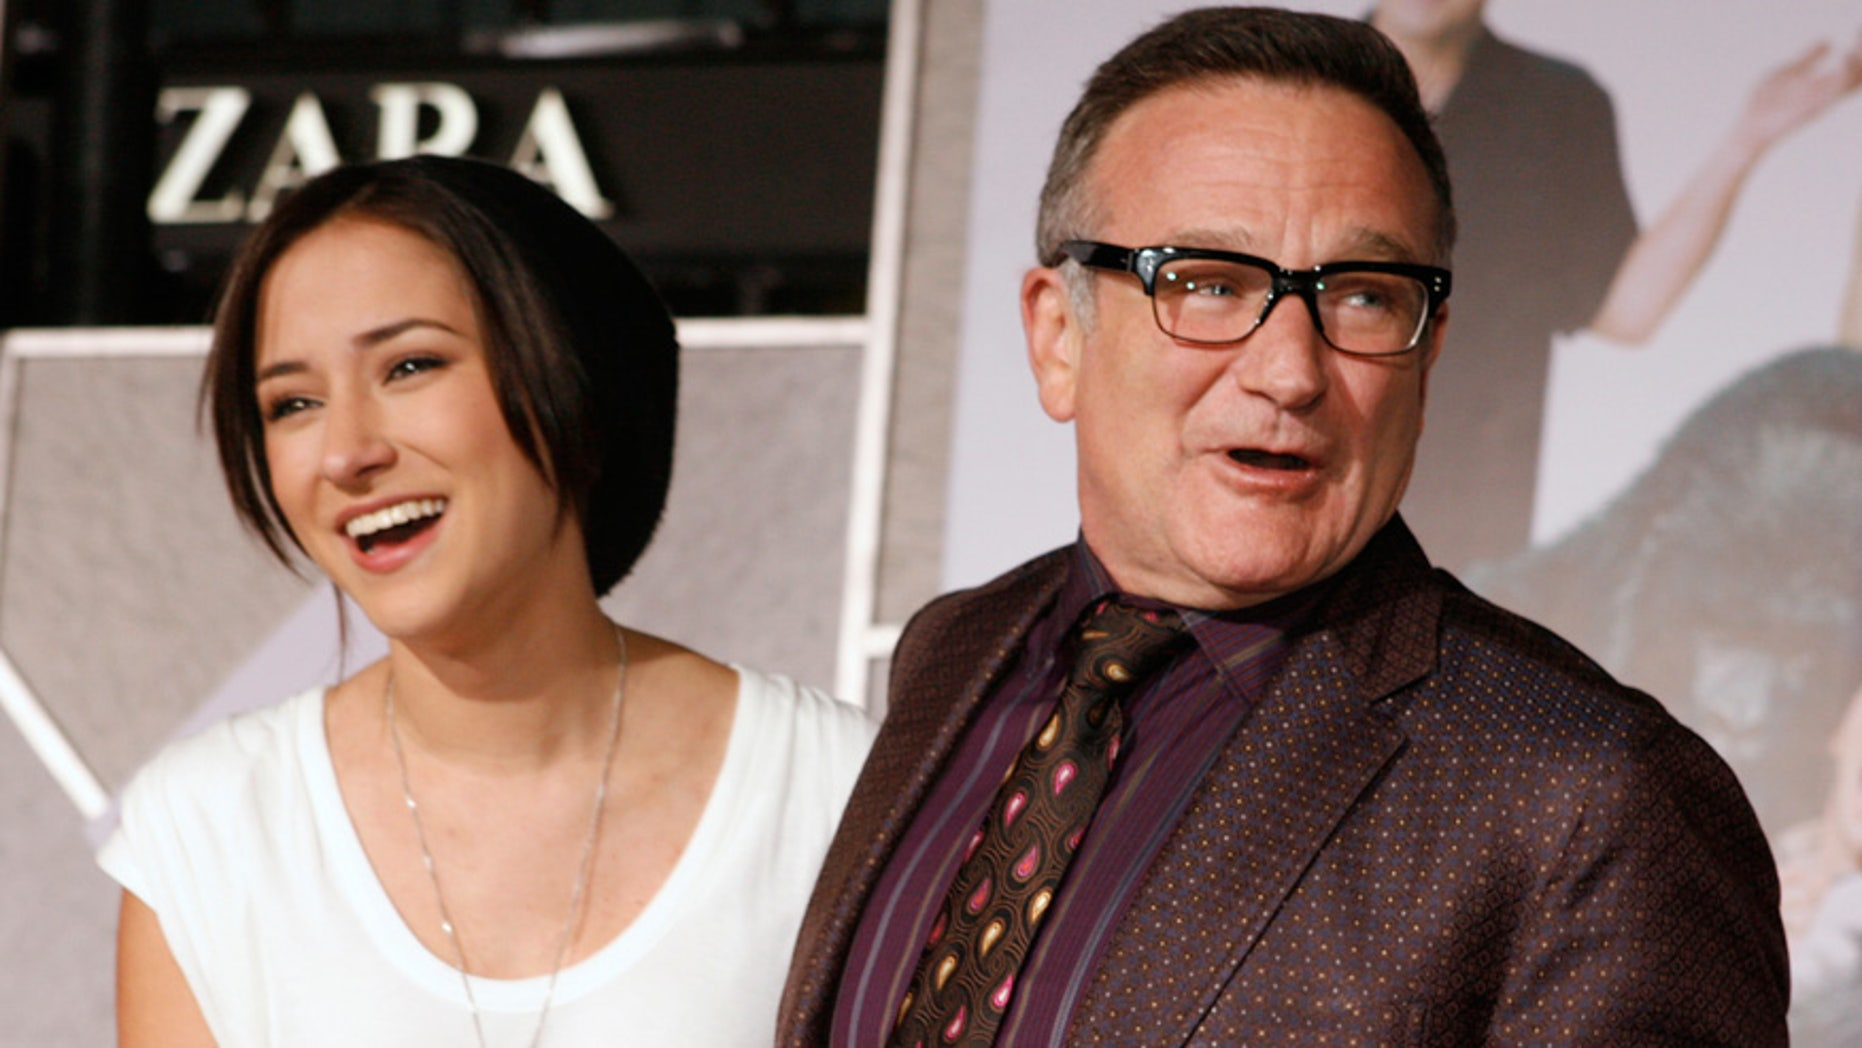 Actor Robin Williams (R) poses with his daughter Zelda Williams as they arrive in Hollywood, California November 9, 2009. REUTERS/Fred Prouser (UNITED STATES ENTERTAINMENT)